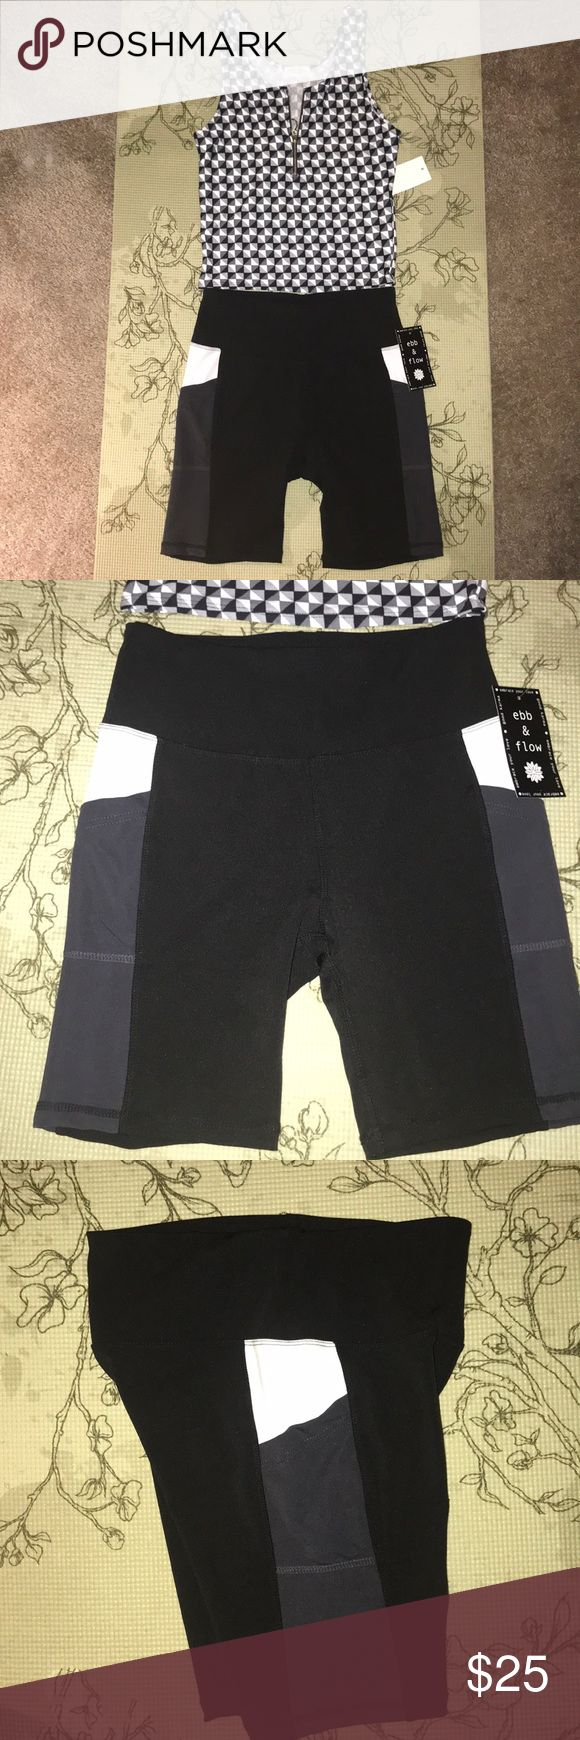 Women's biker shorts gym outfit Super cute outfit for the gym or a run or athl...